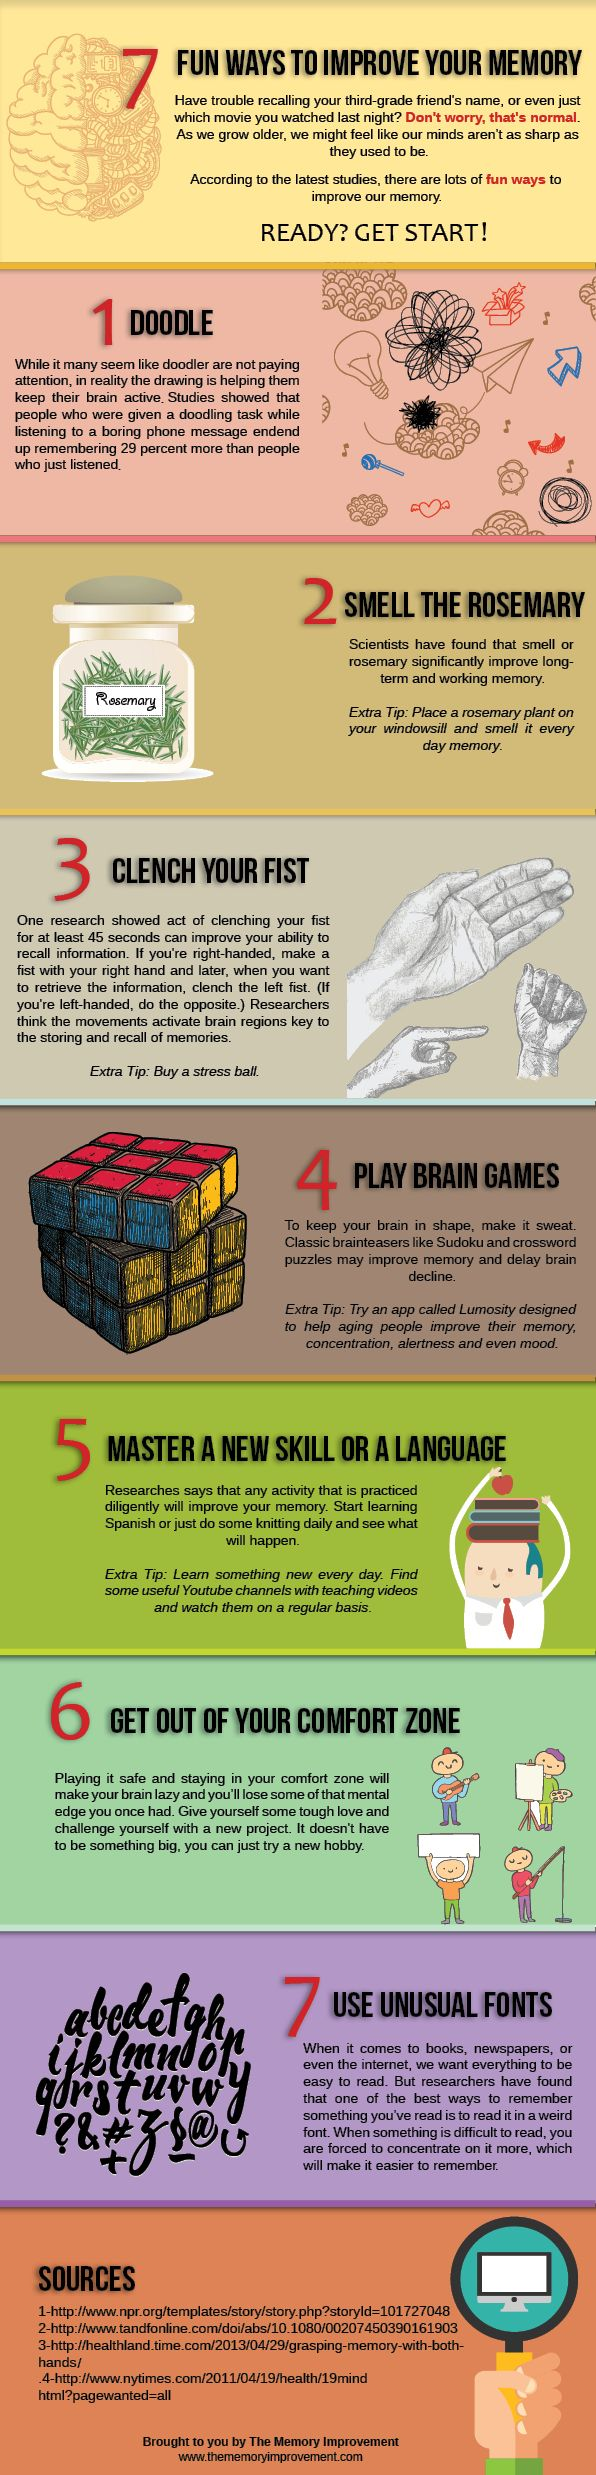 Infographic with seven fun ways to improve your memory. Just try some doodling or playing brain games. It can help your brain a lot!